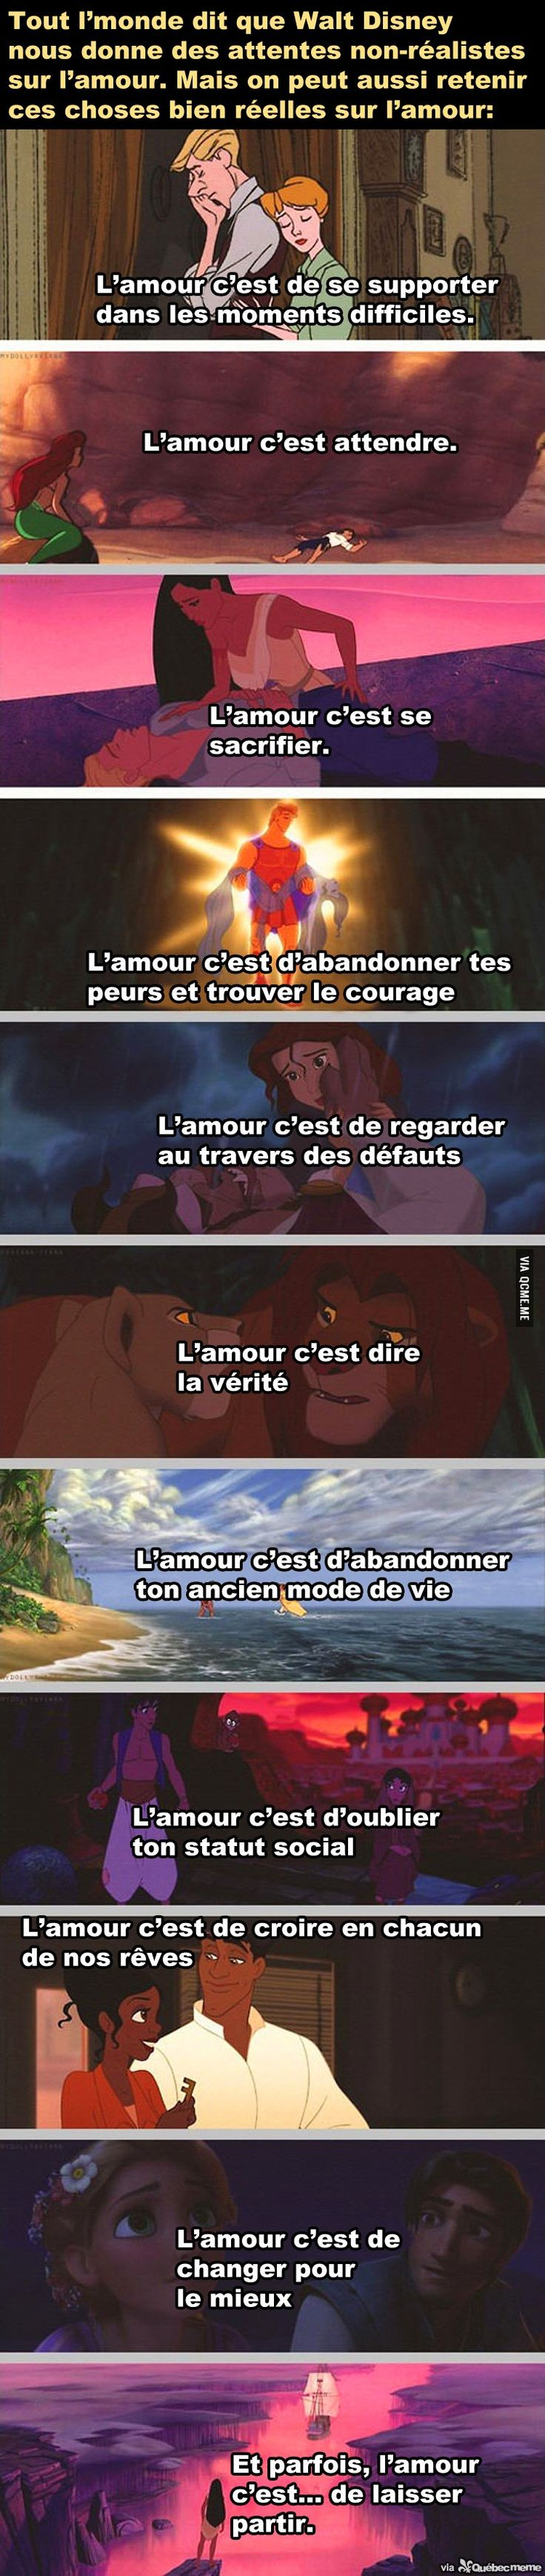 L'Amour selon Disney